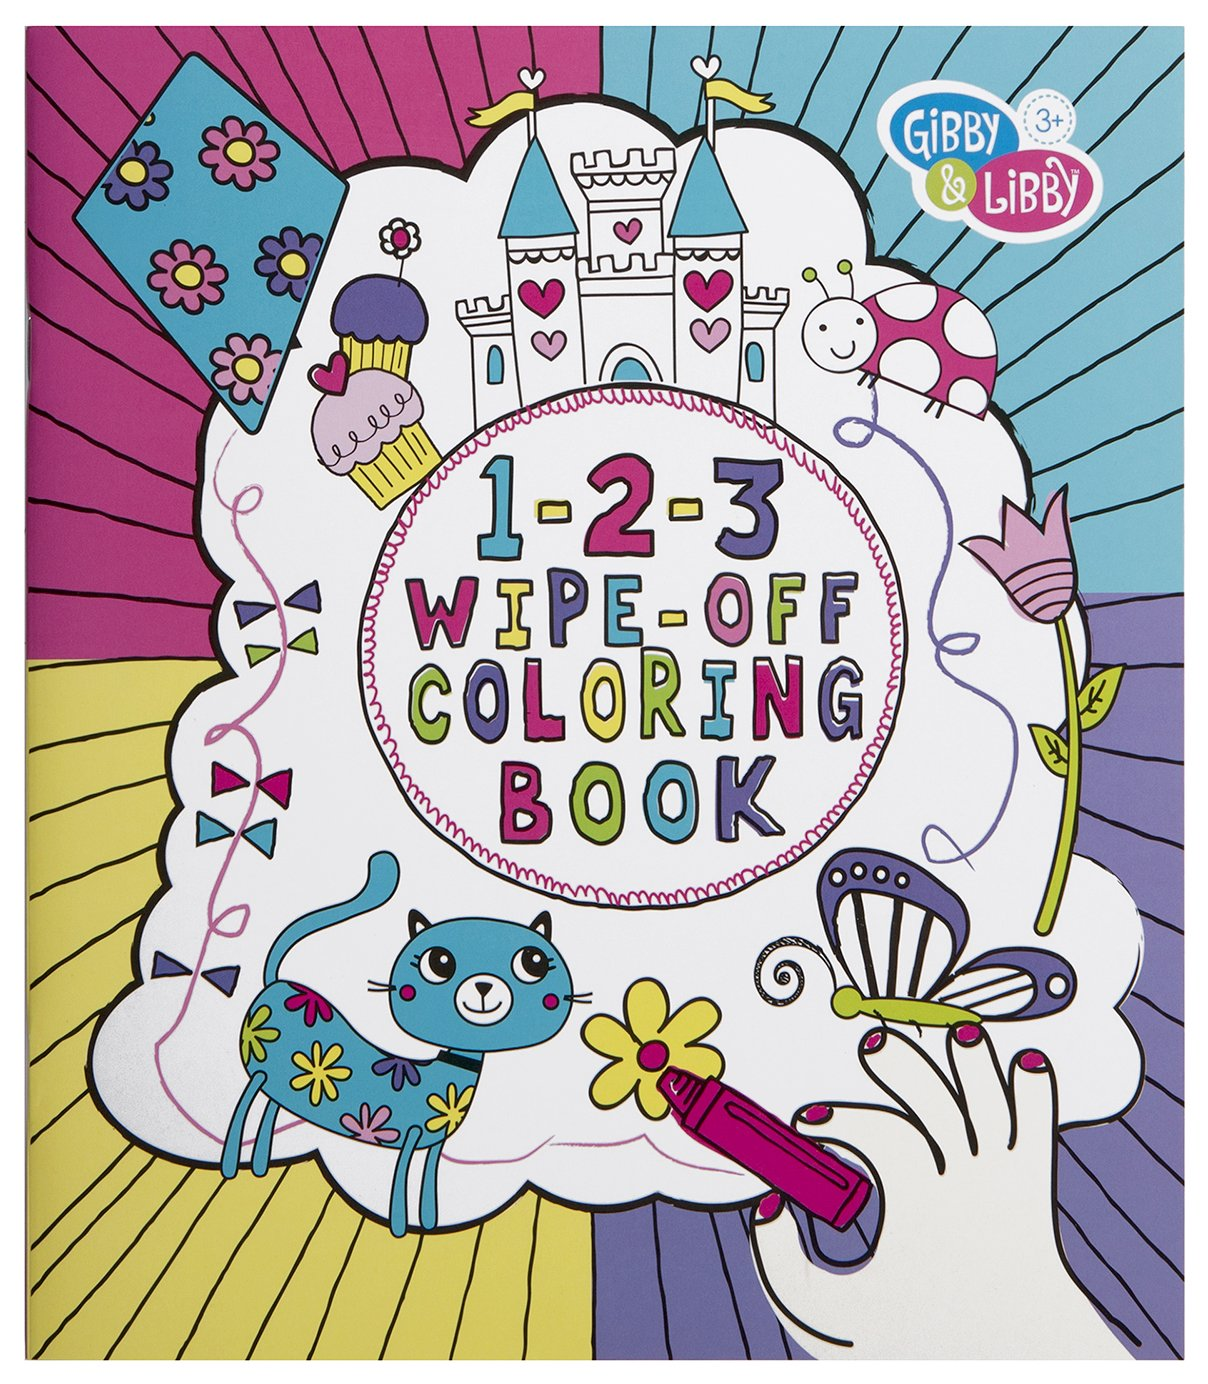 Gibson Gibby /& Libby 1-2-3 Wipe-Off Coloring Book for Girls BWCB-14582 C.R